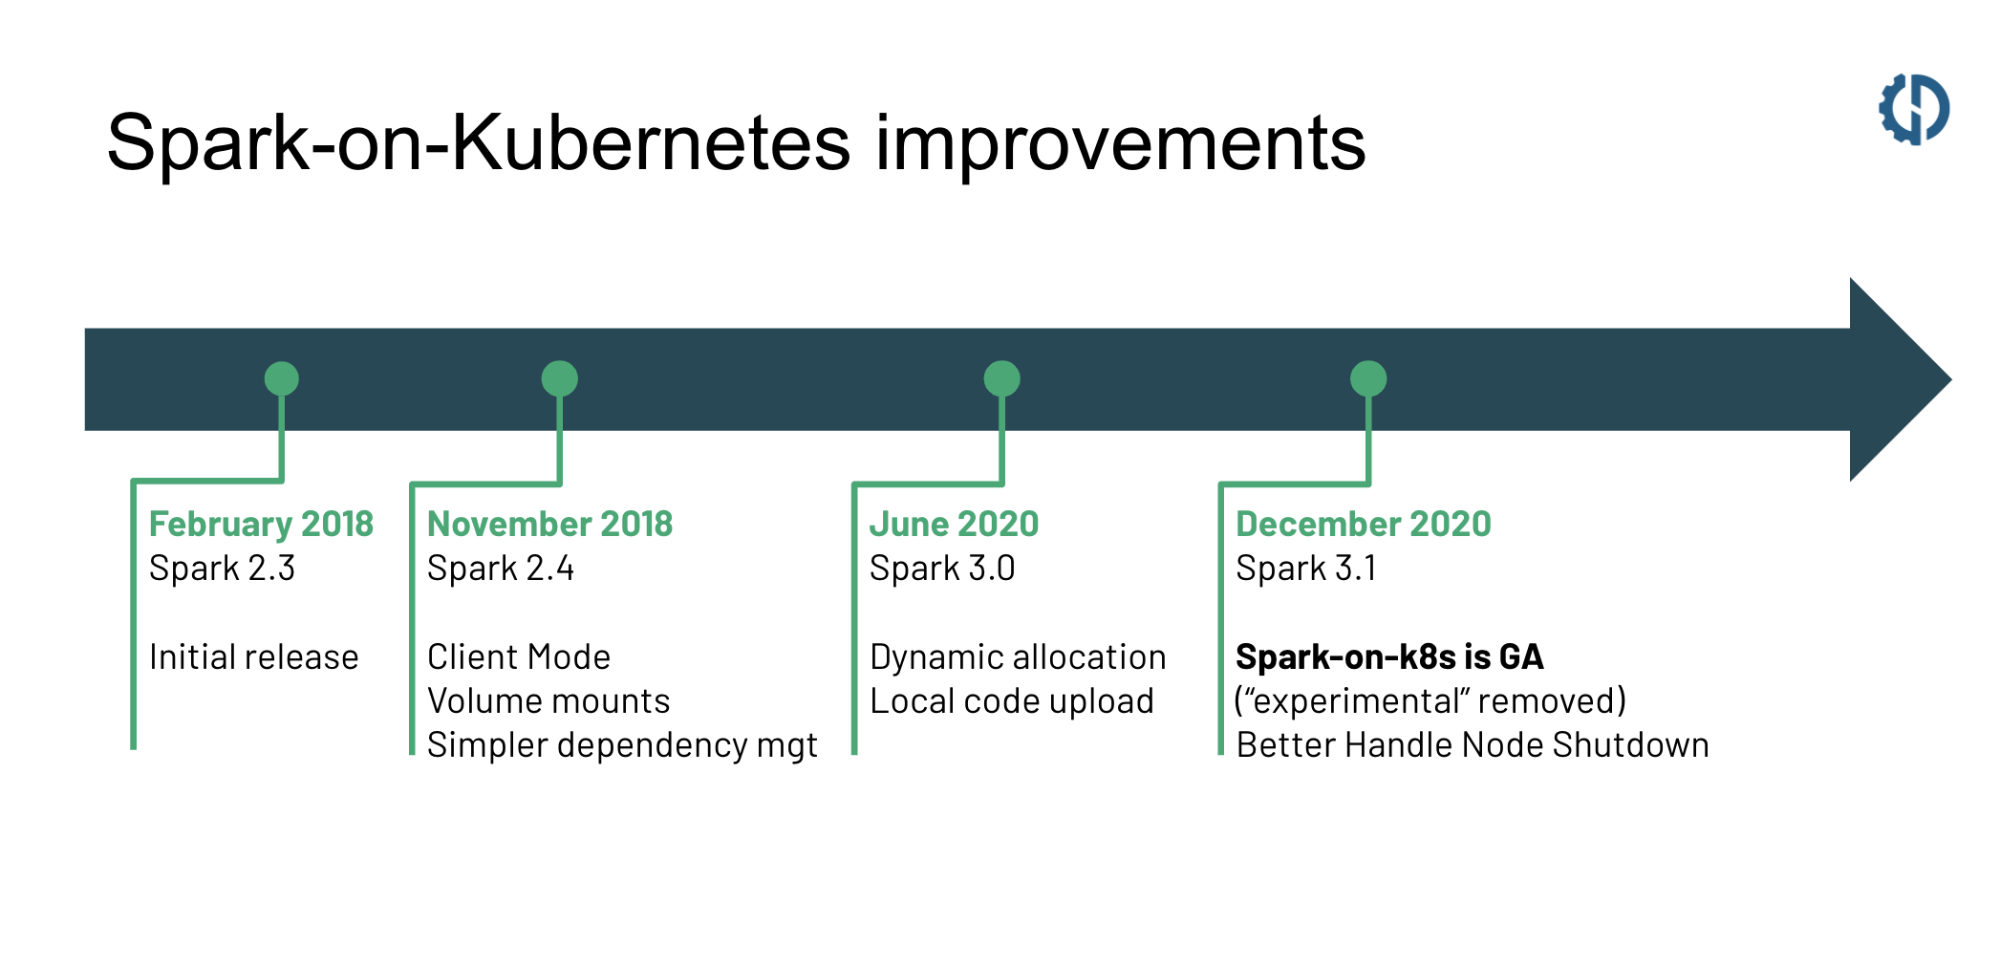 Improvements to Spark on Kubernetes